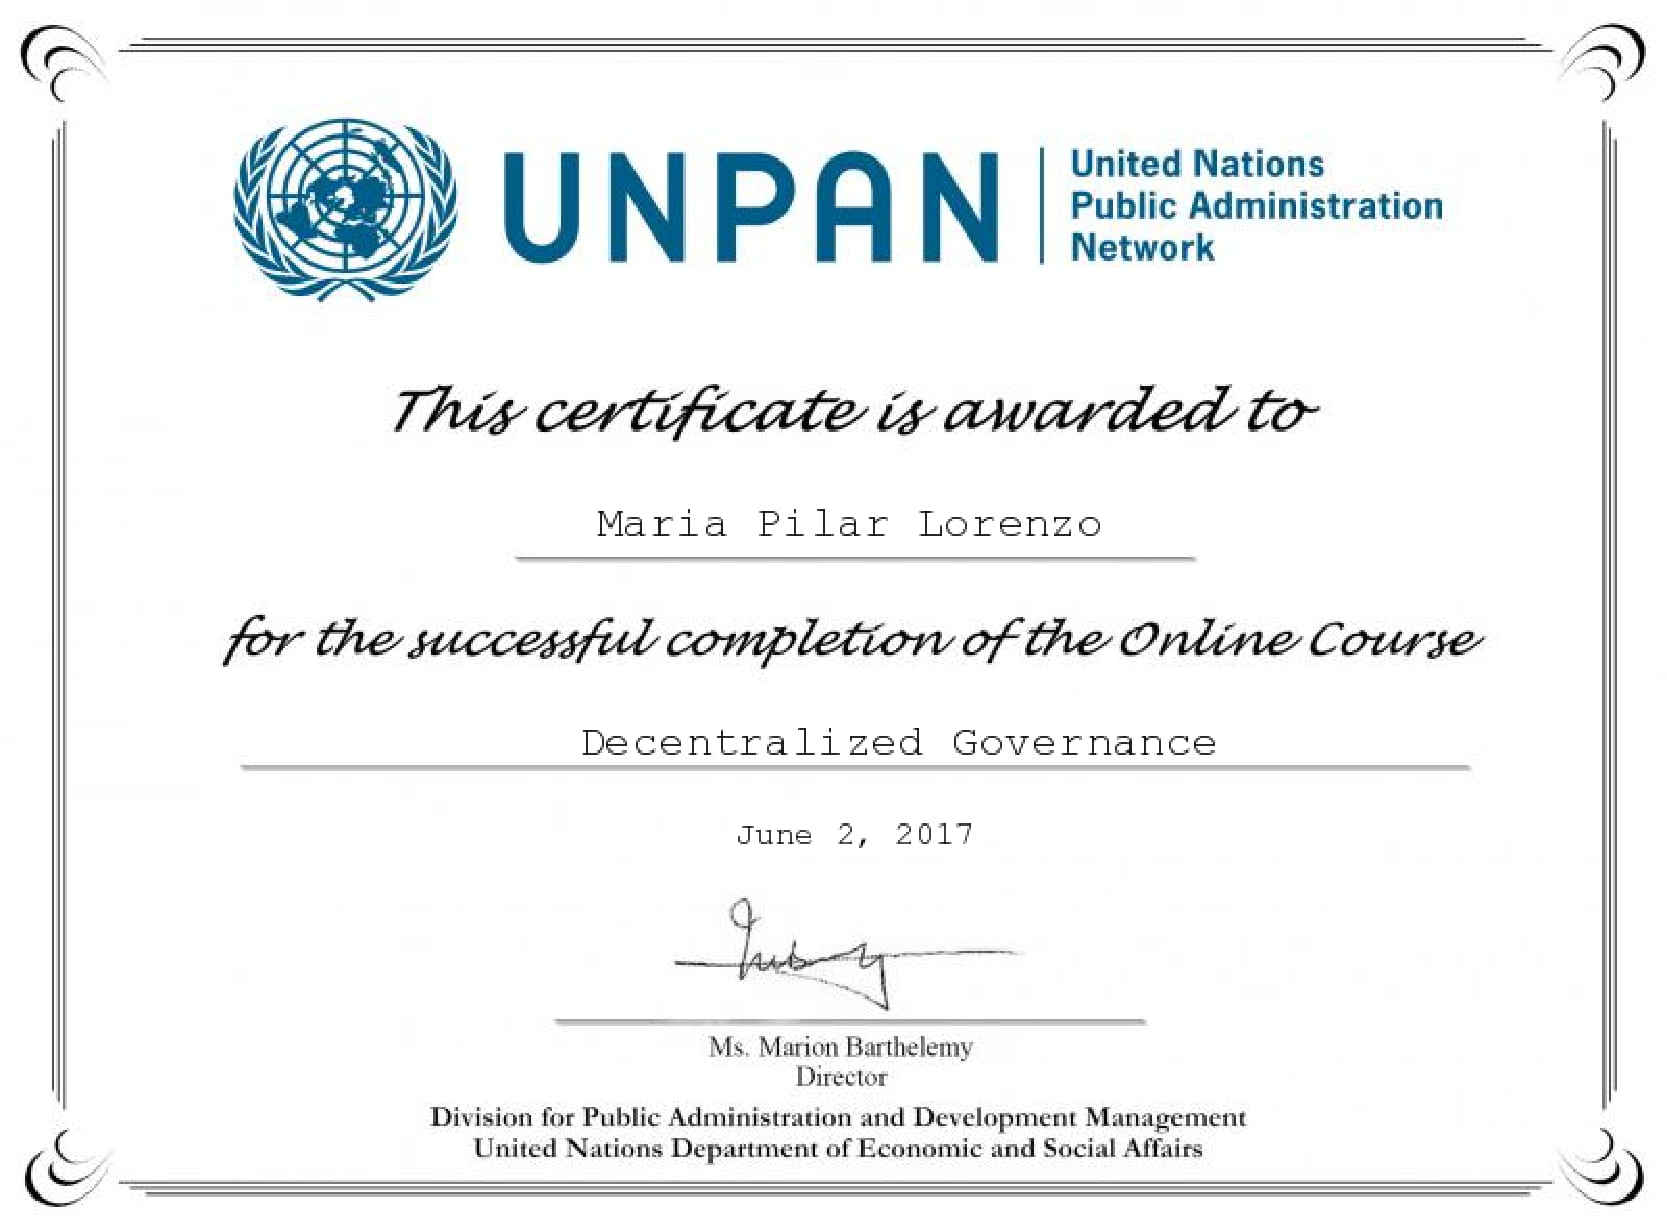 UNPAN Decentralized Governance-1